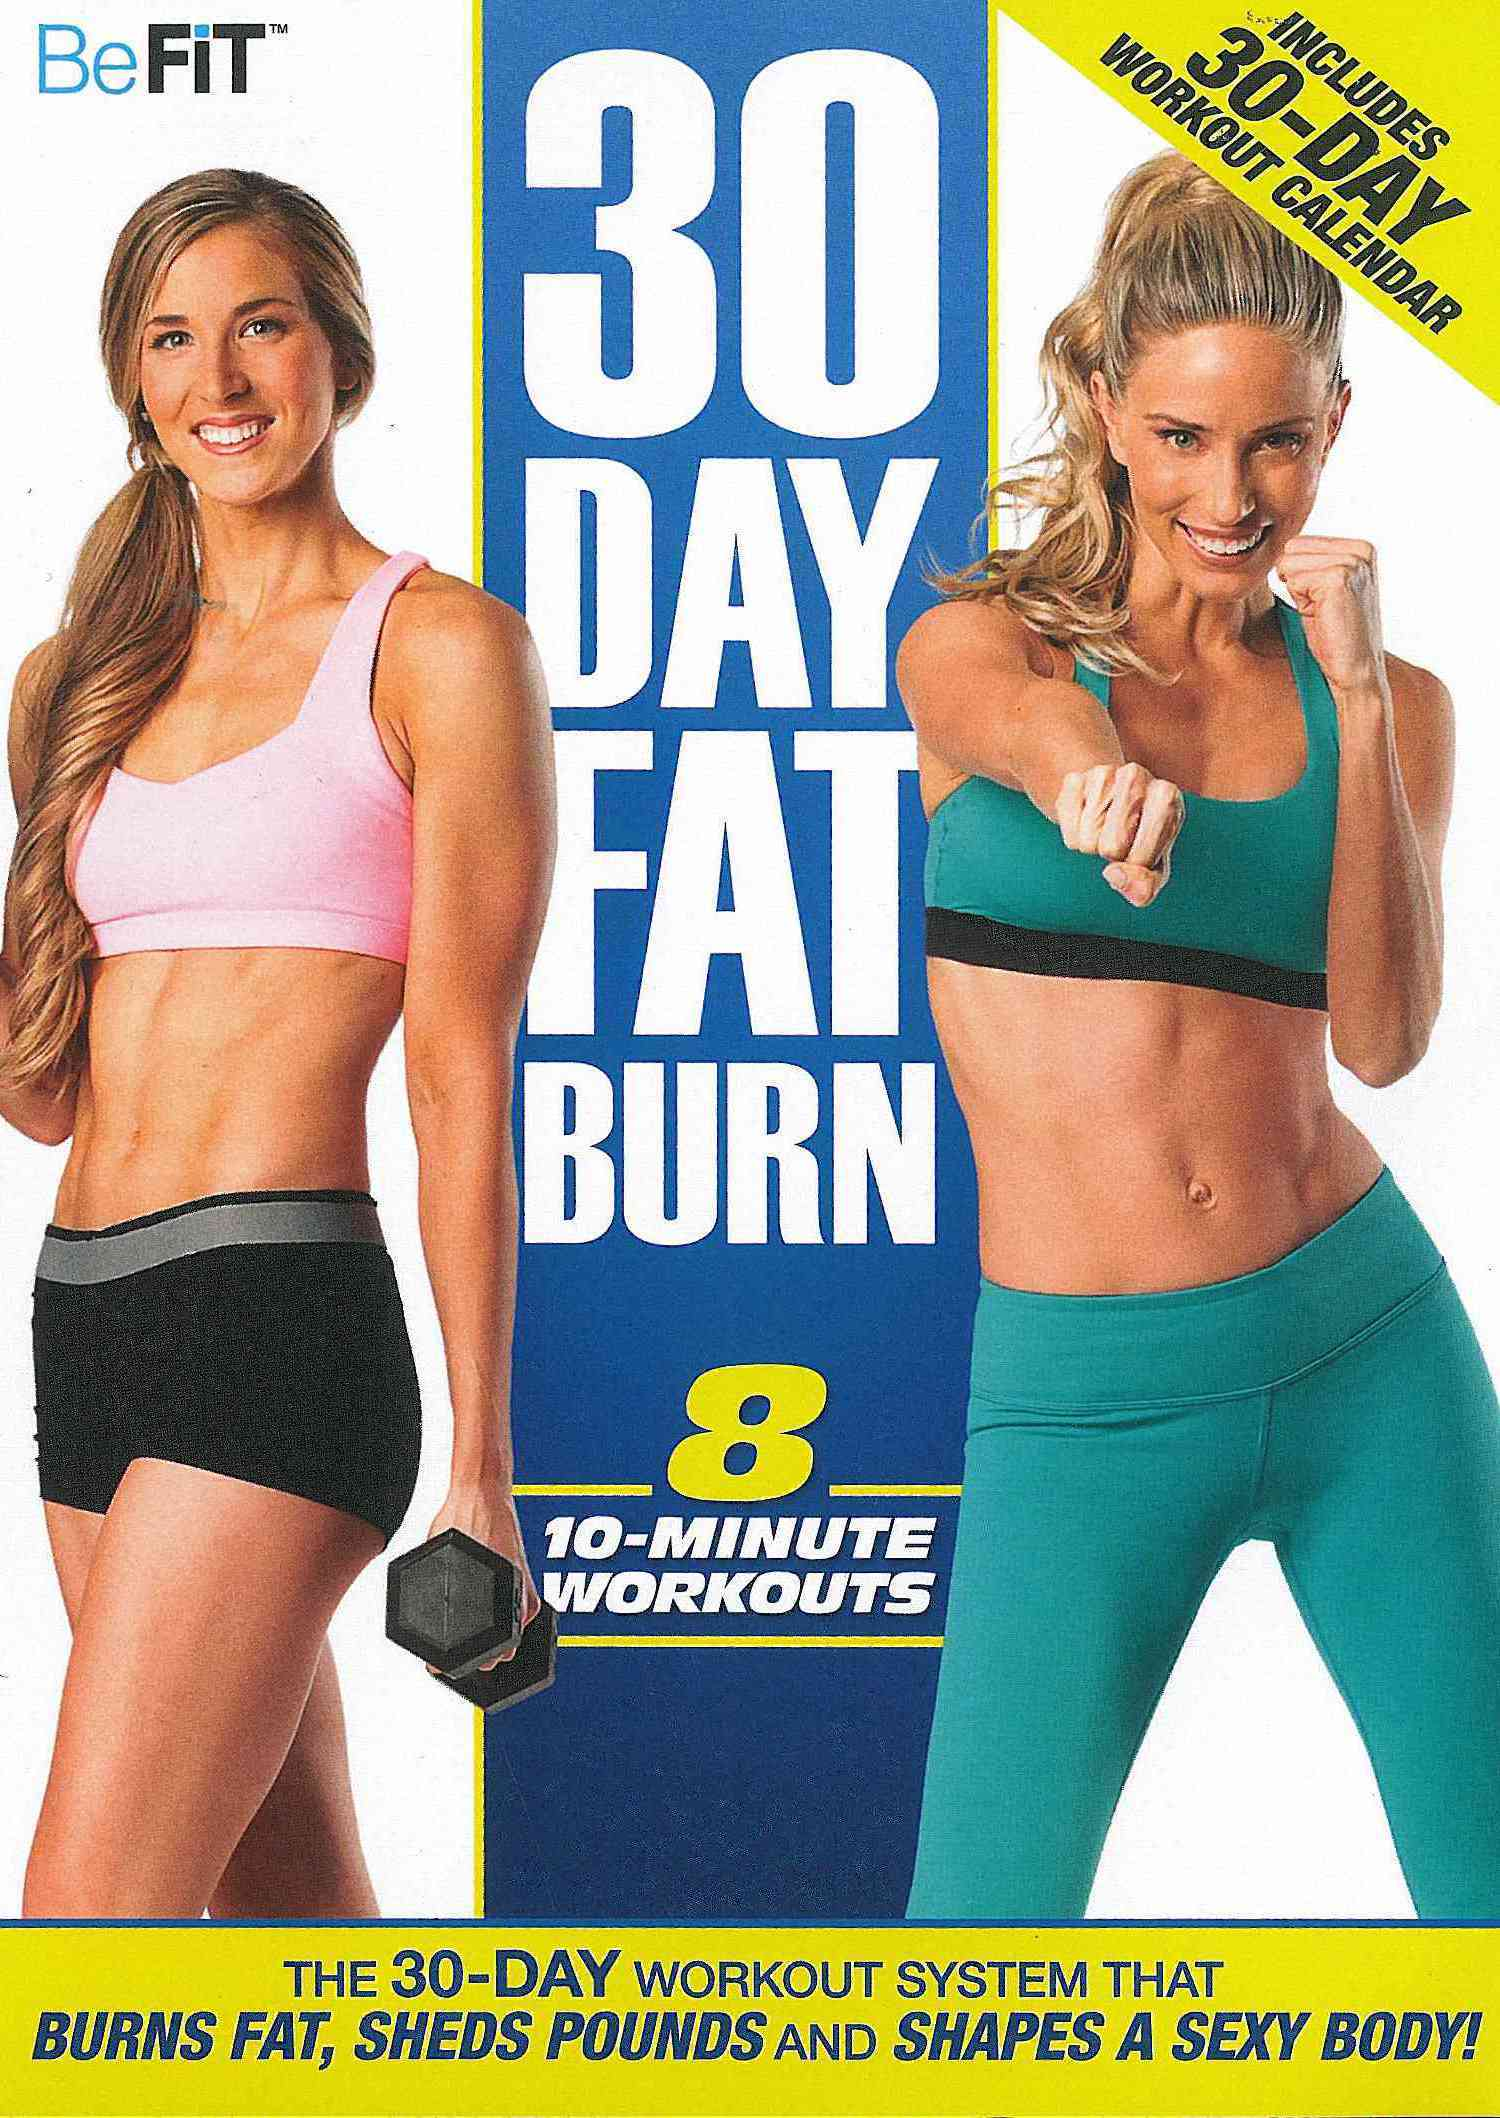 Befit: 30-Day Fat Burn (DVD) - 16940781 - Overstock.com Shopping - Big ...